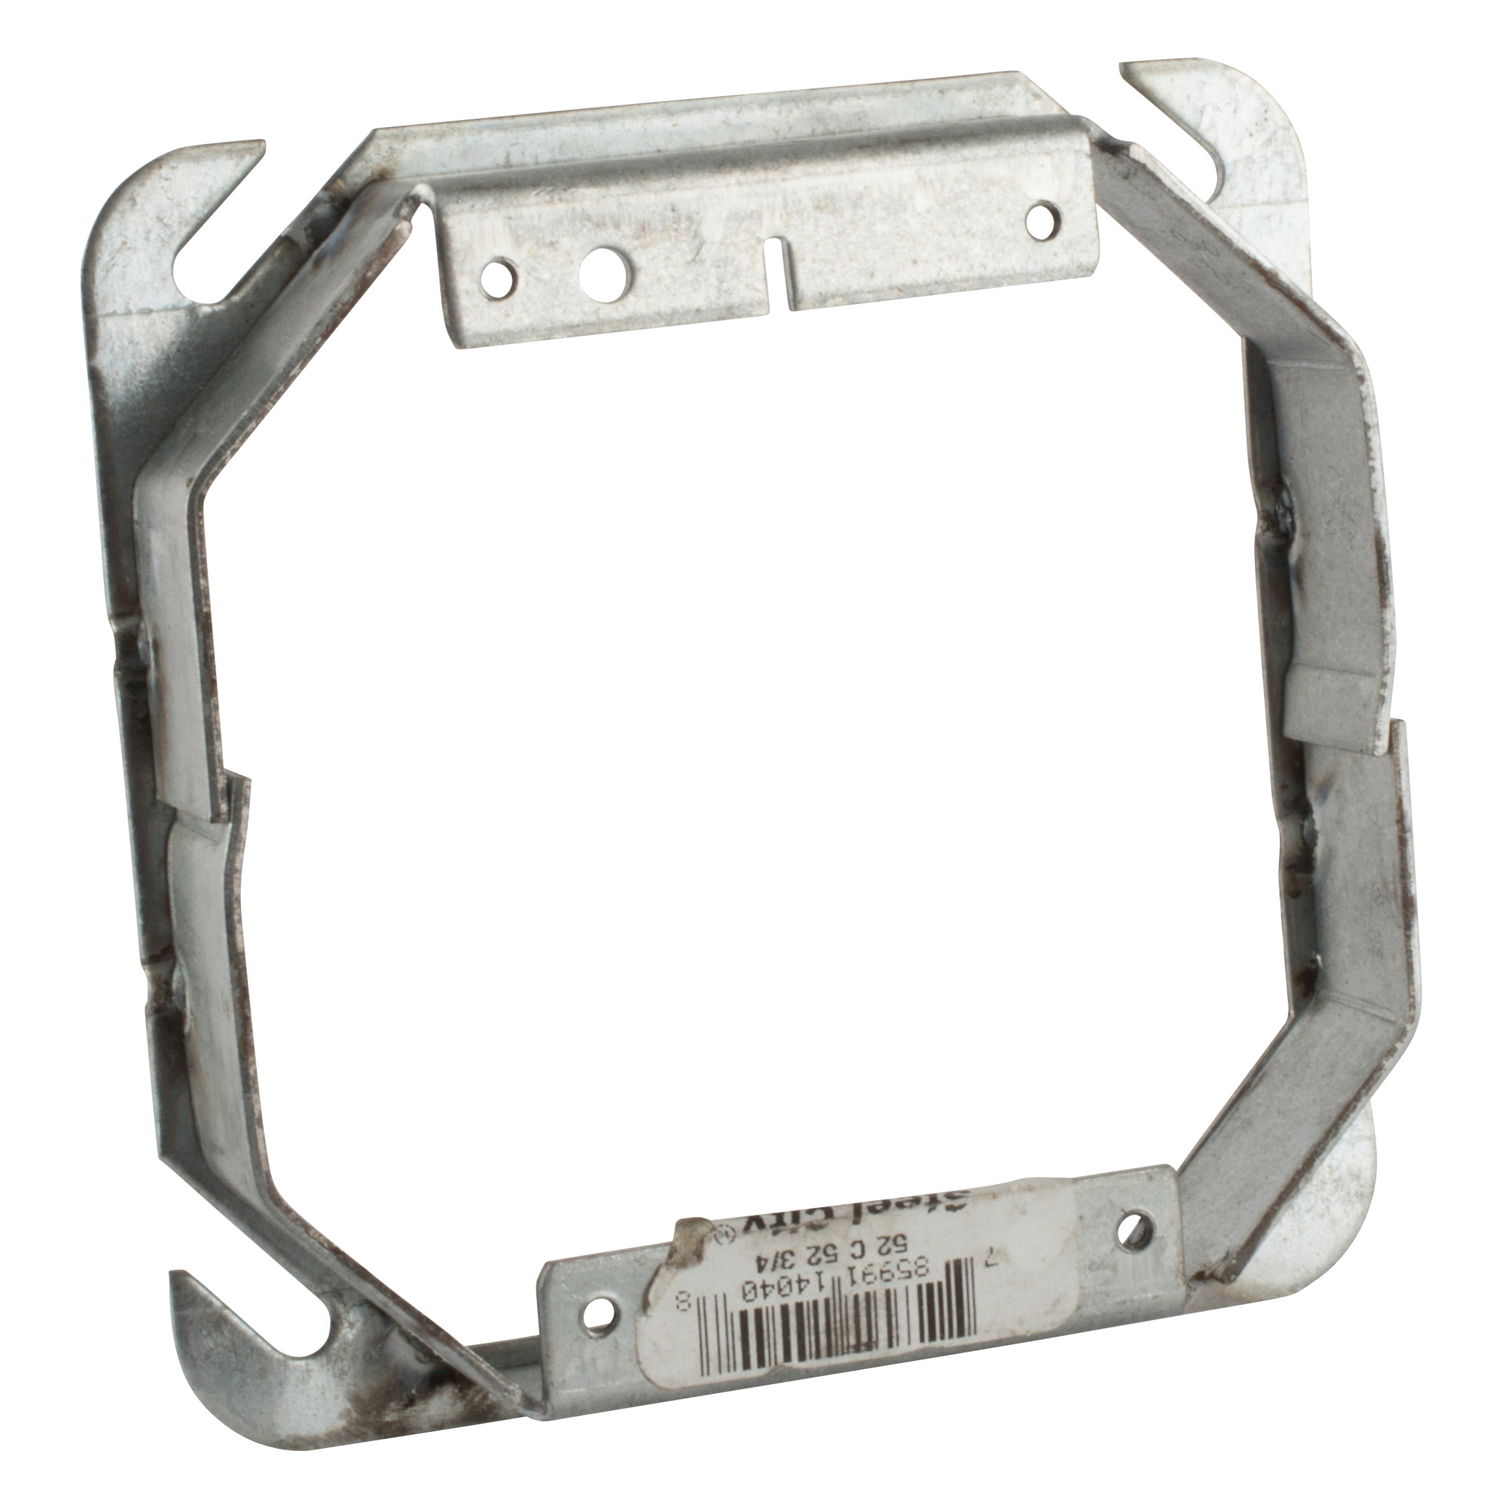 STL-CTY 52C523/4 STEEL COVER